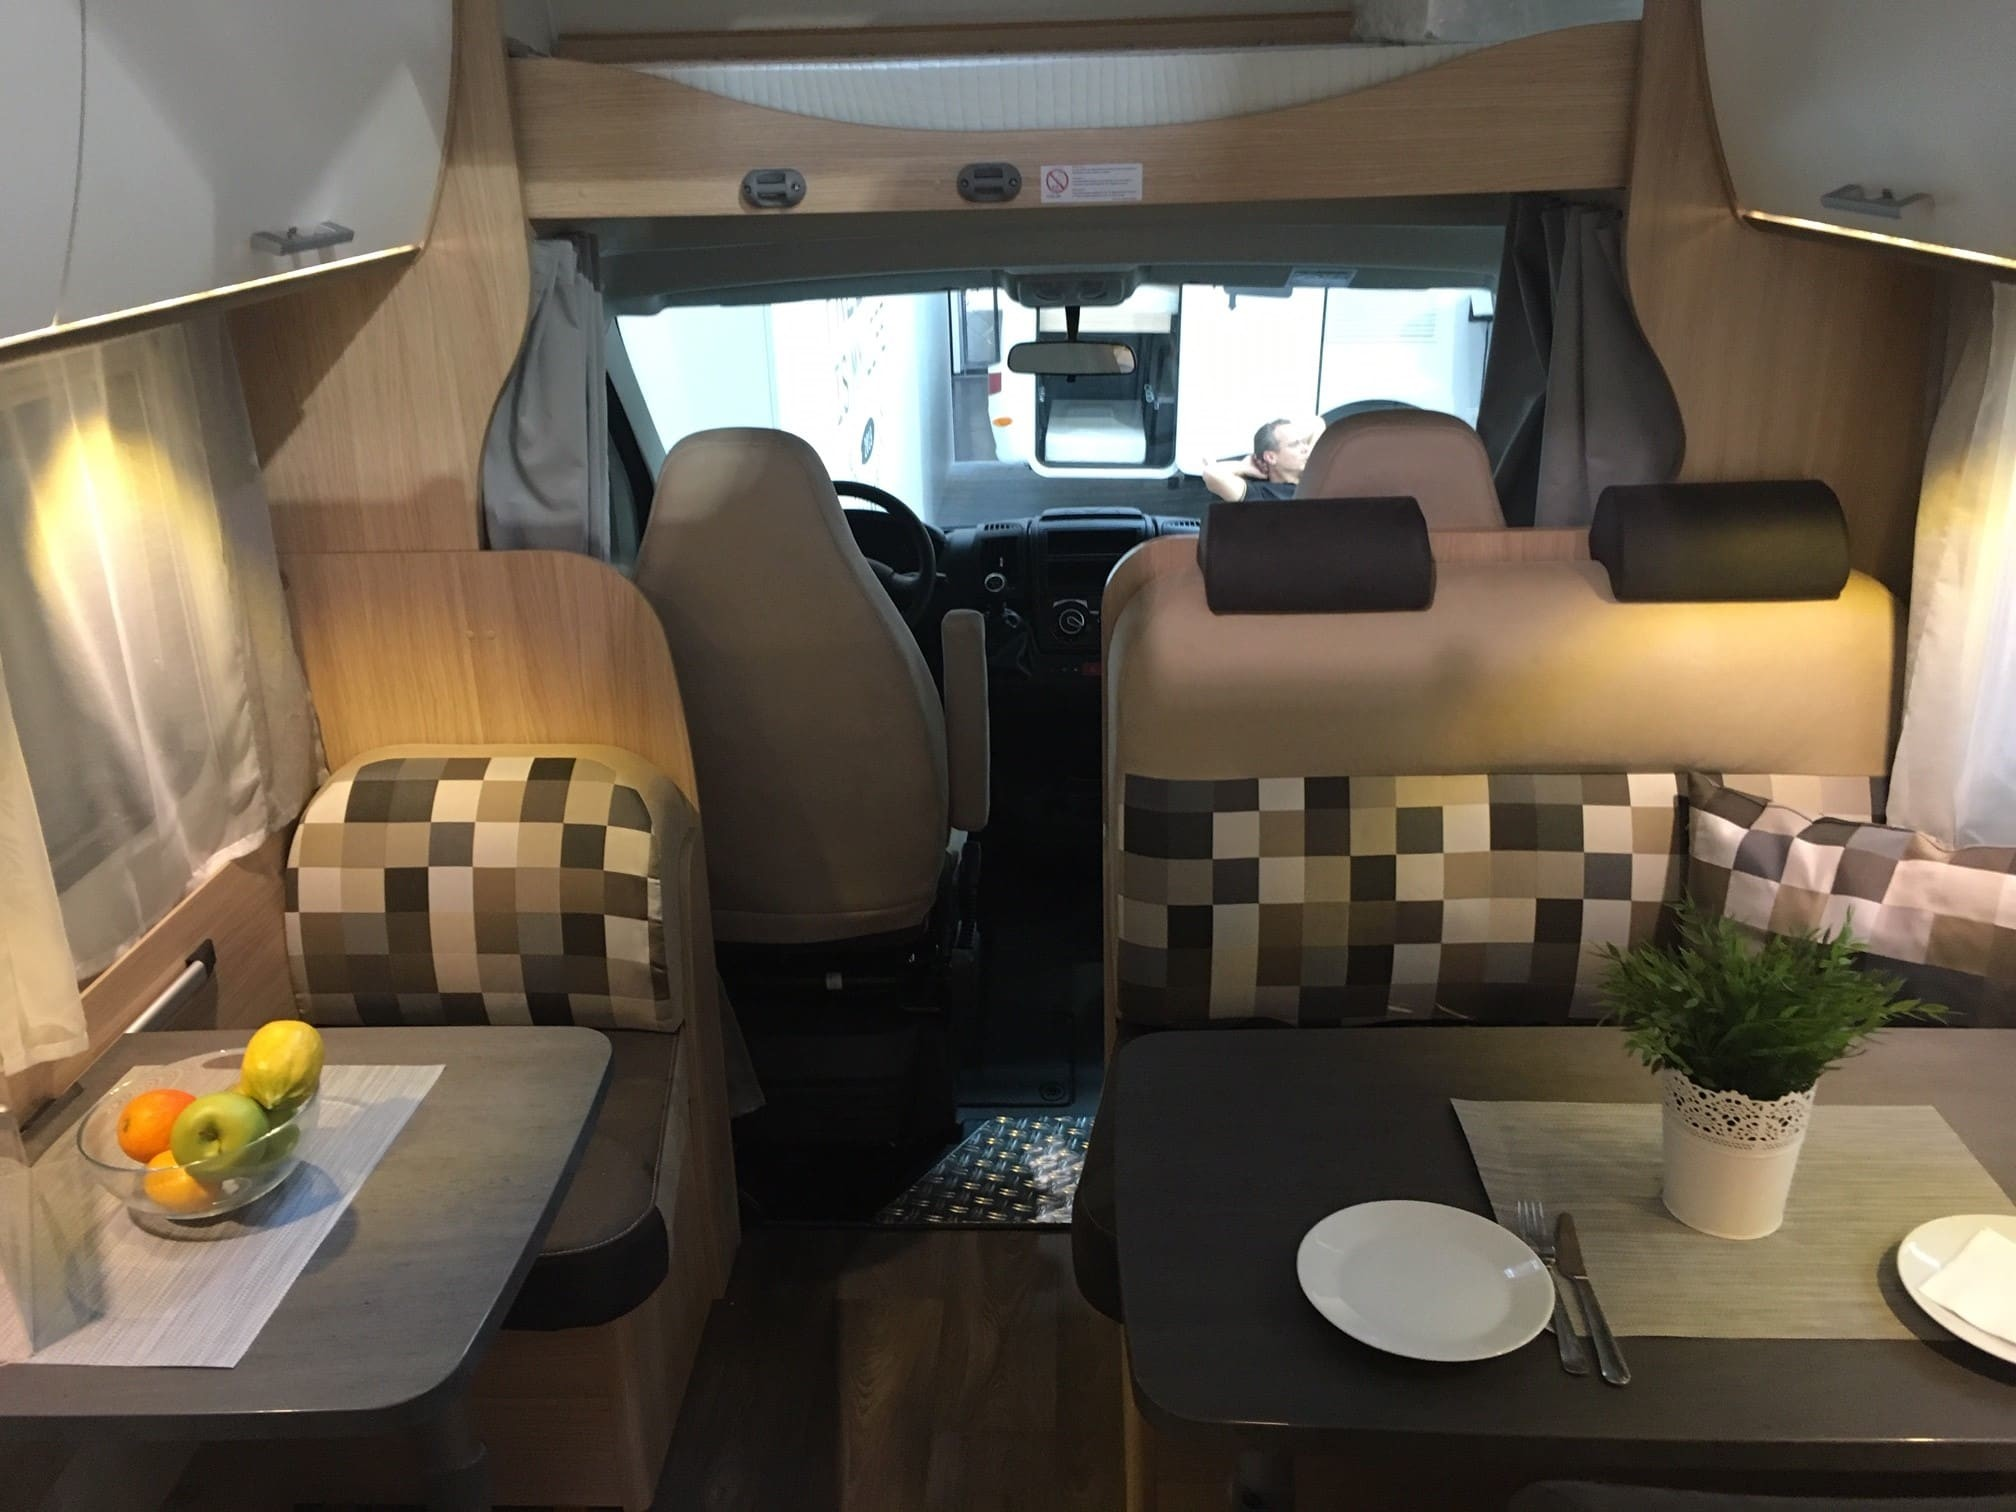 wohnmobil sunlight a 72 wohnwagen mieten deutschland. Black Bedroom Furniture Sets. Home Design Ideas